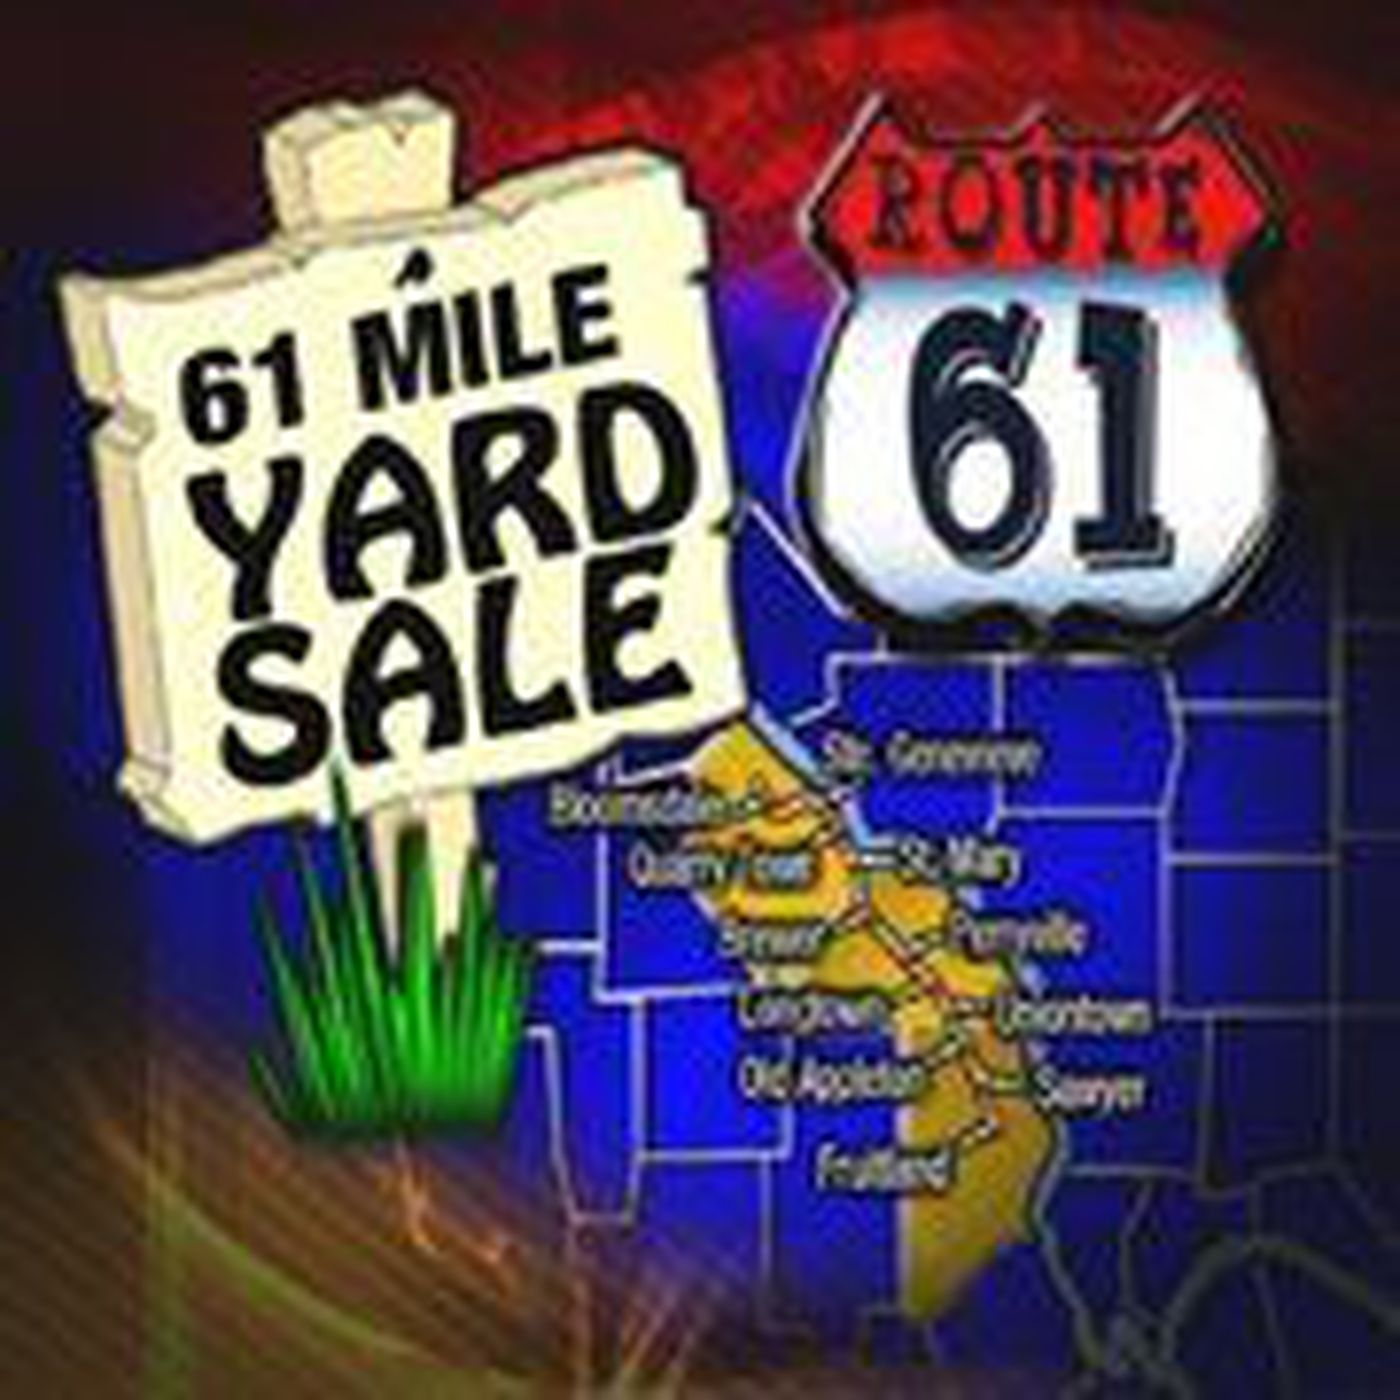 61-mile Yard Sale Over Labor Day Weekend